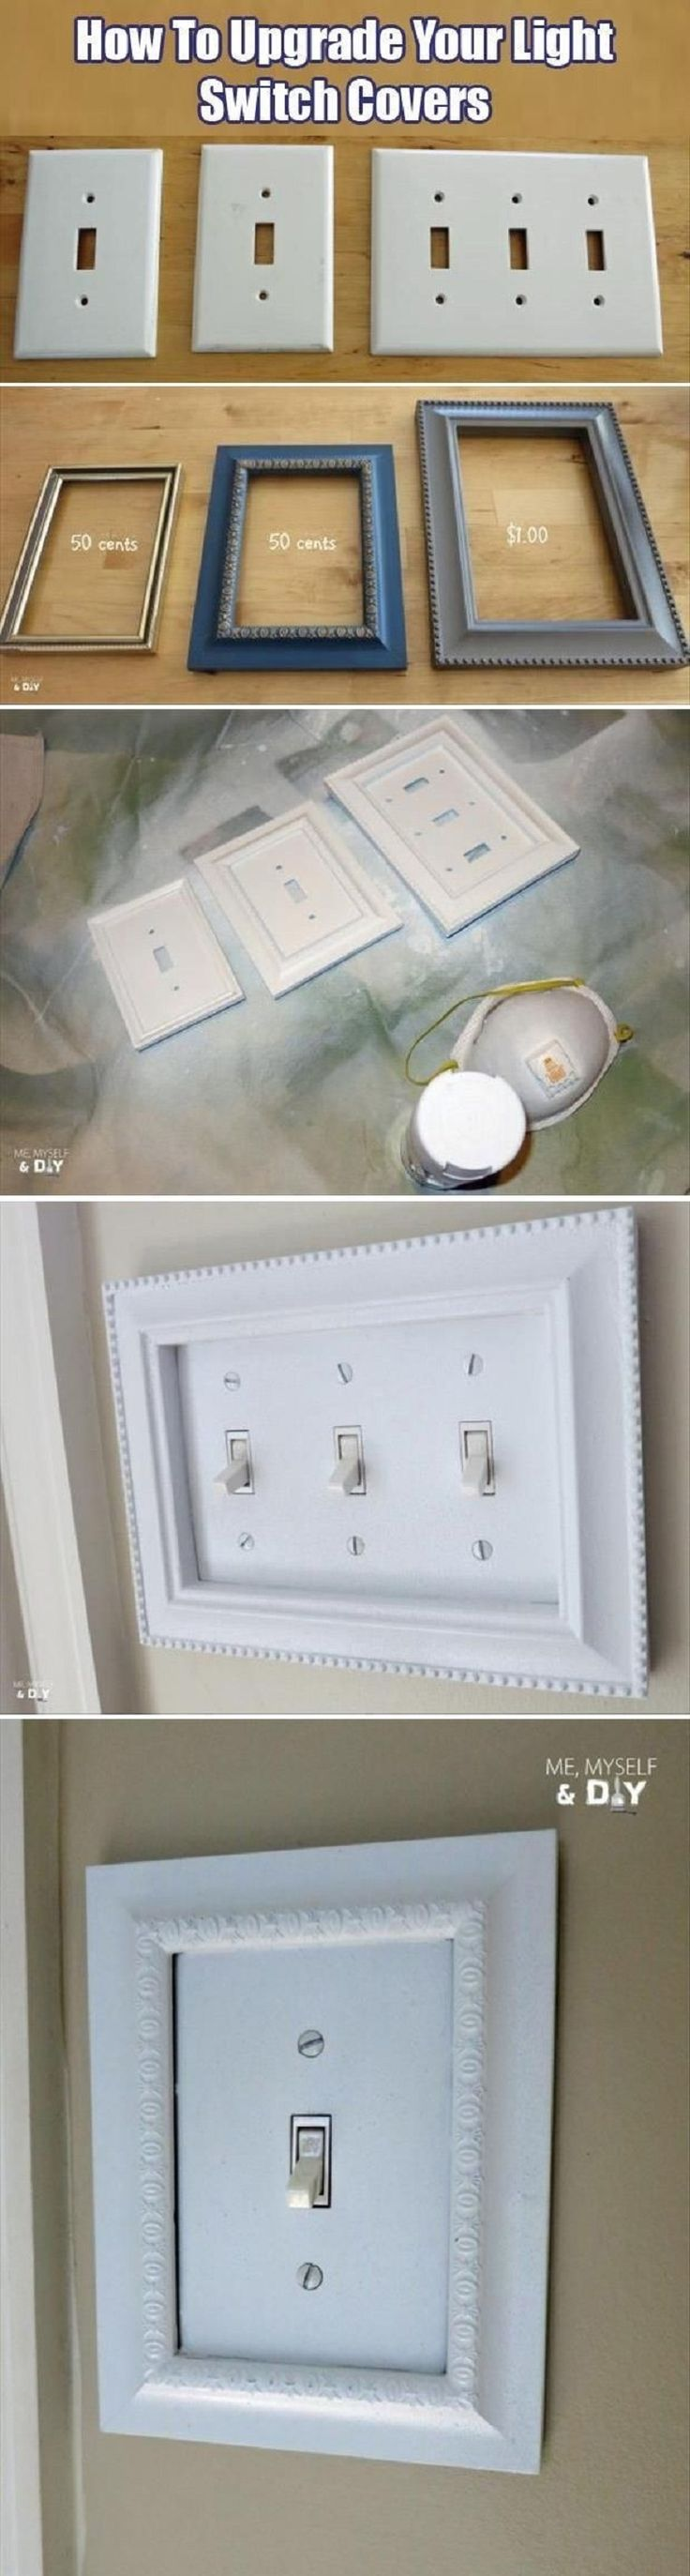 228 best diy home decor images on pinterest creative ideas